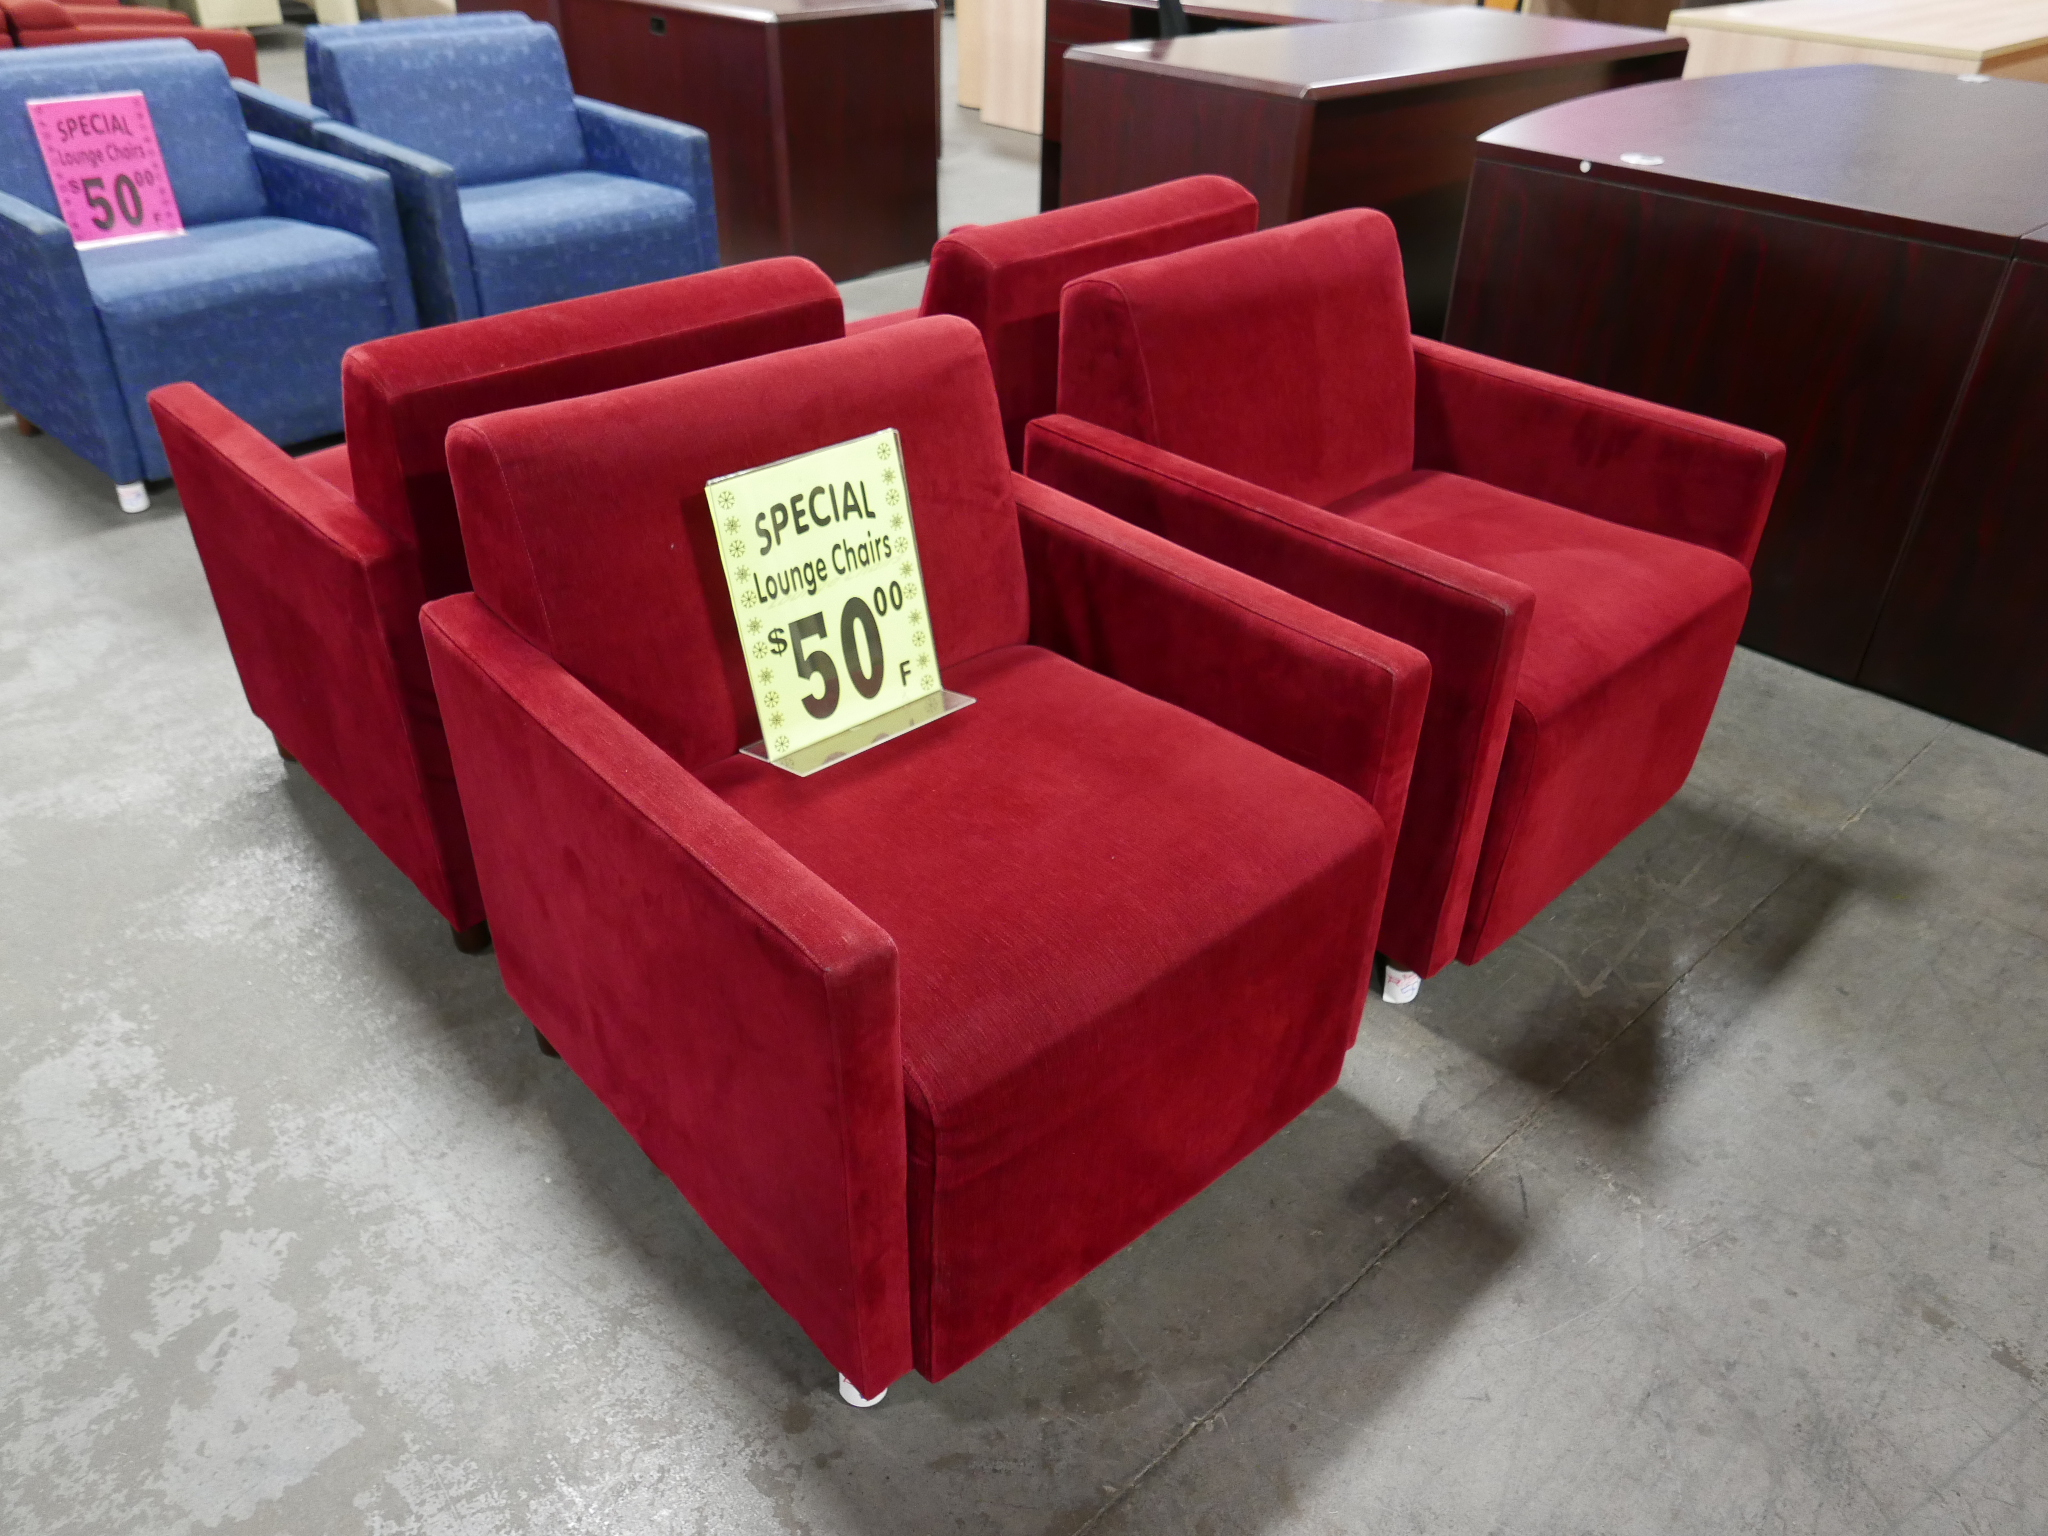 red chairs for sale bedroom chair under 50 lounge cherry mohair by coalesse tr trading company